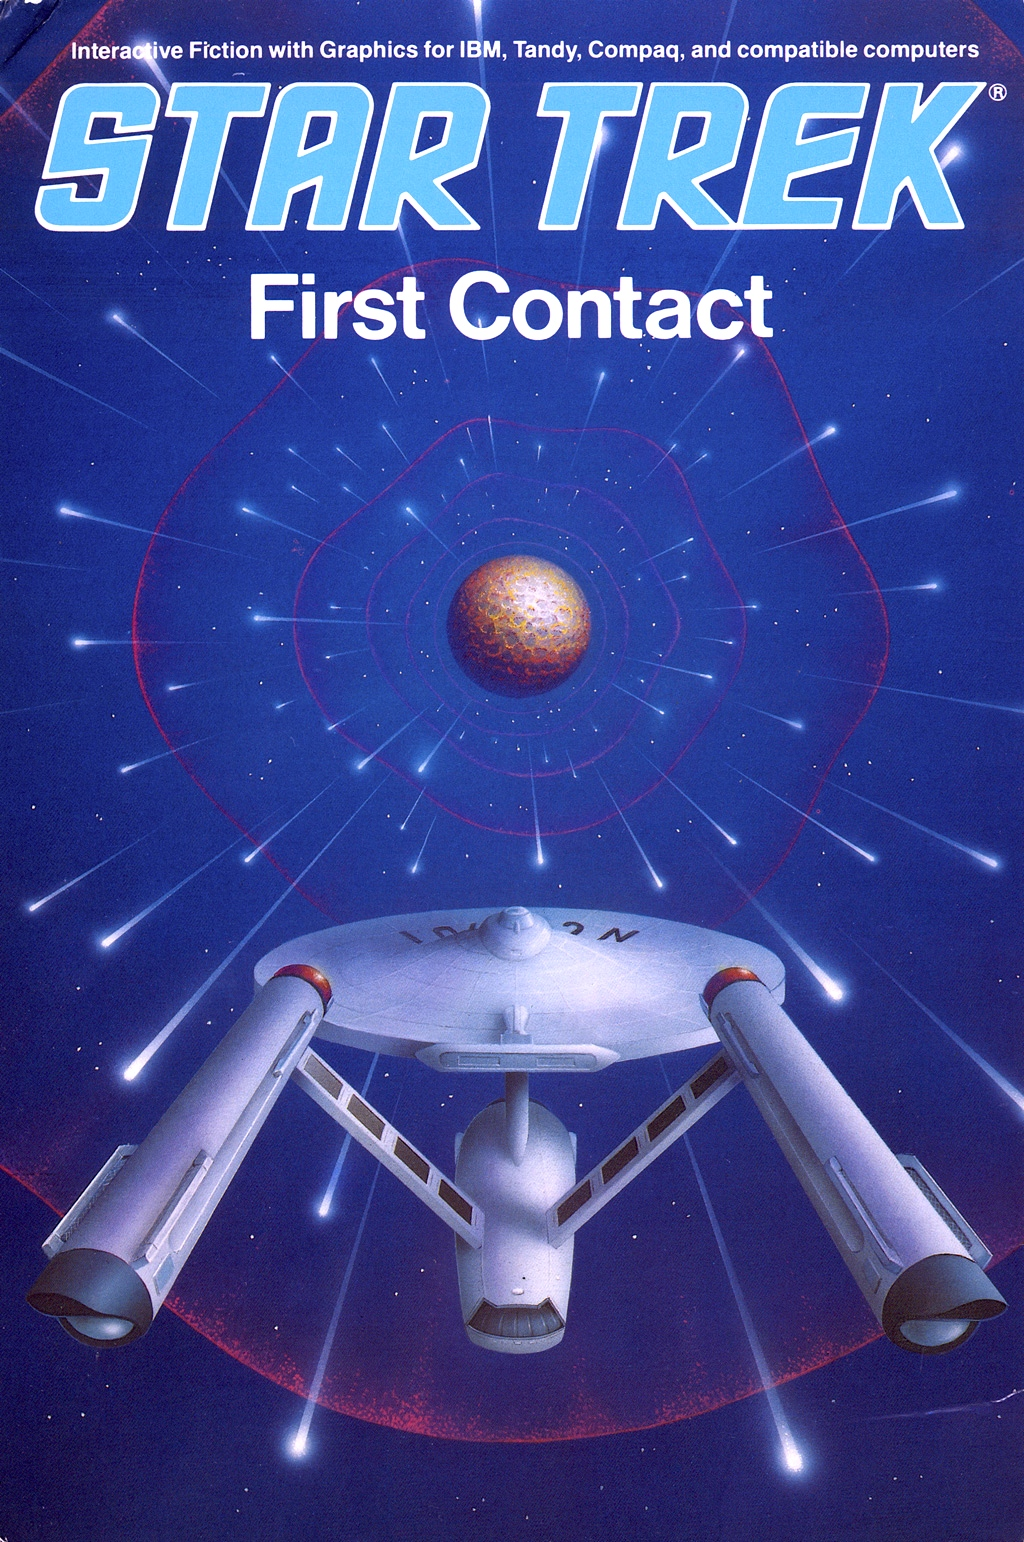 First Contact (game)